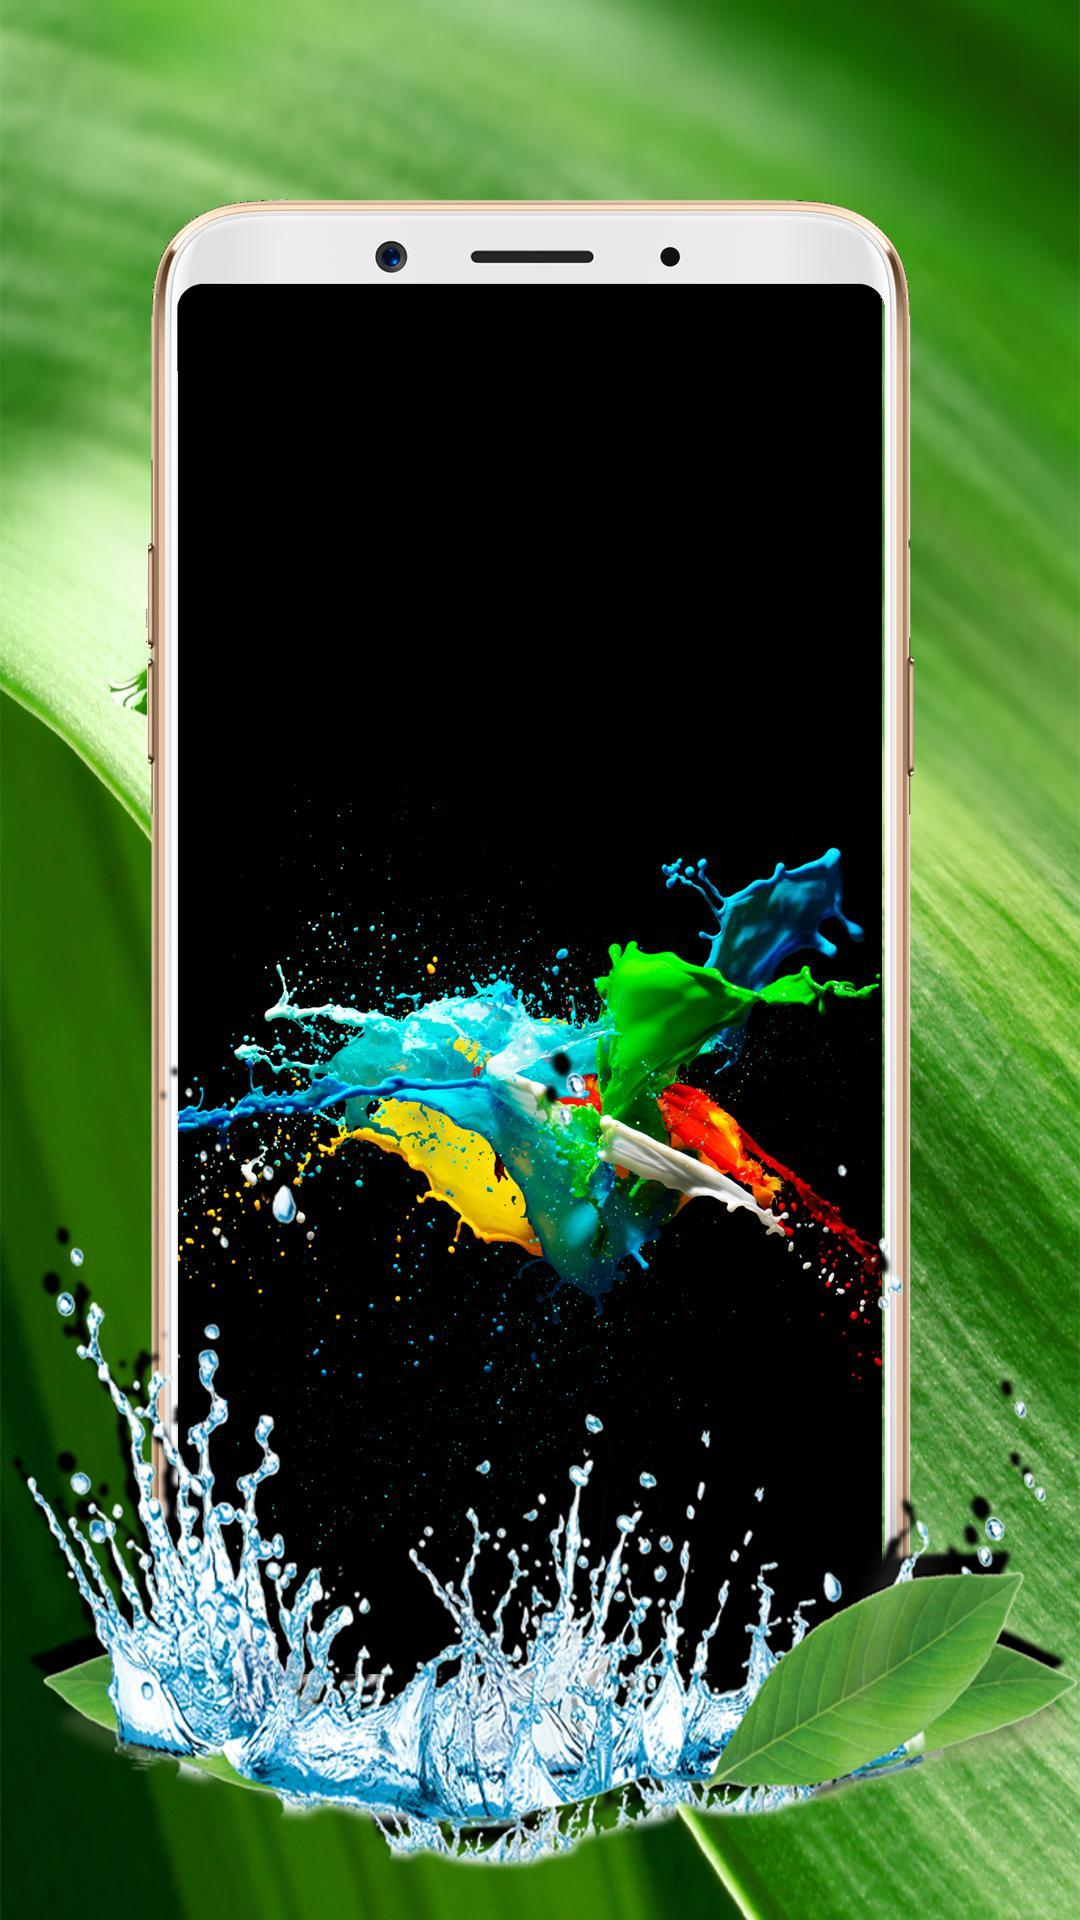 Launcher Theme For Oppo F5 - Launcher Oppo F5 for Android